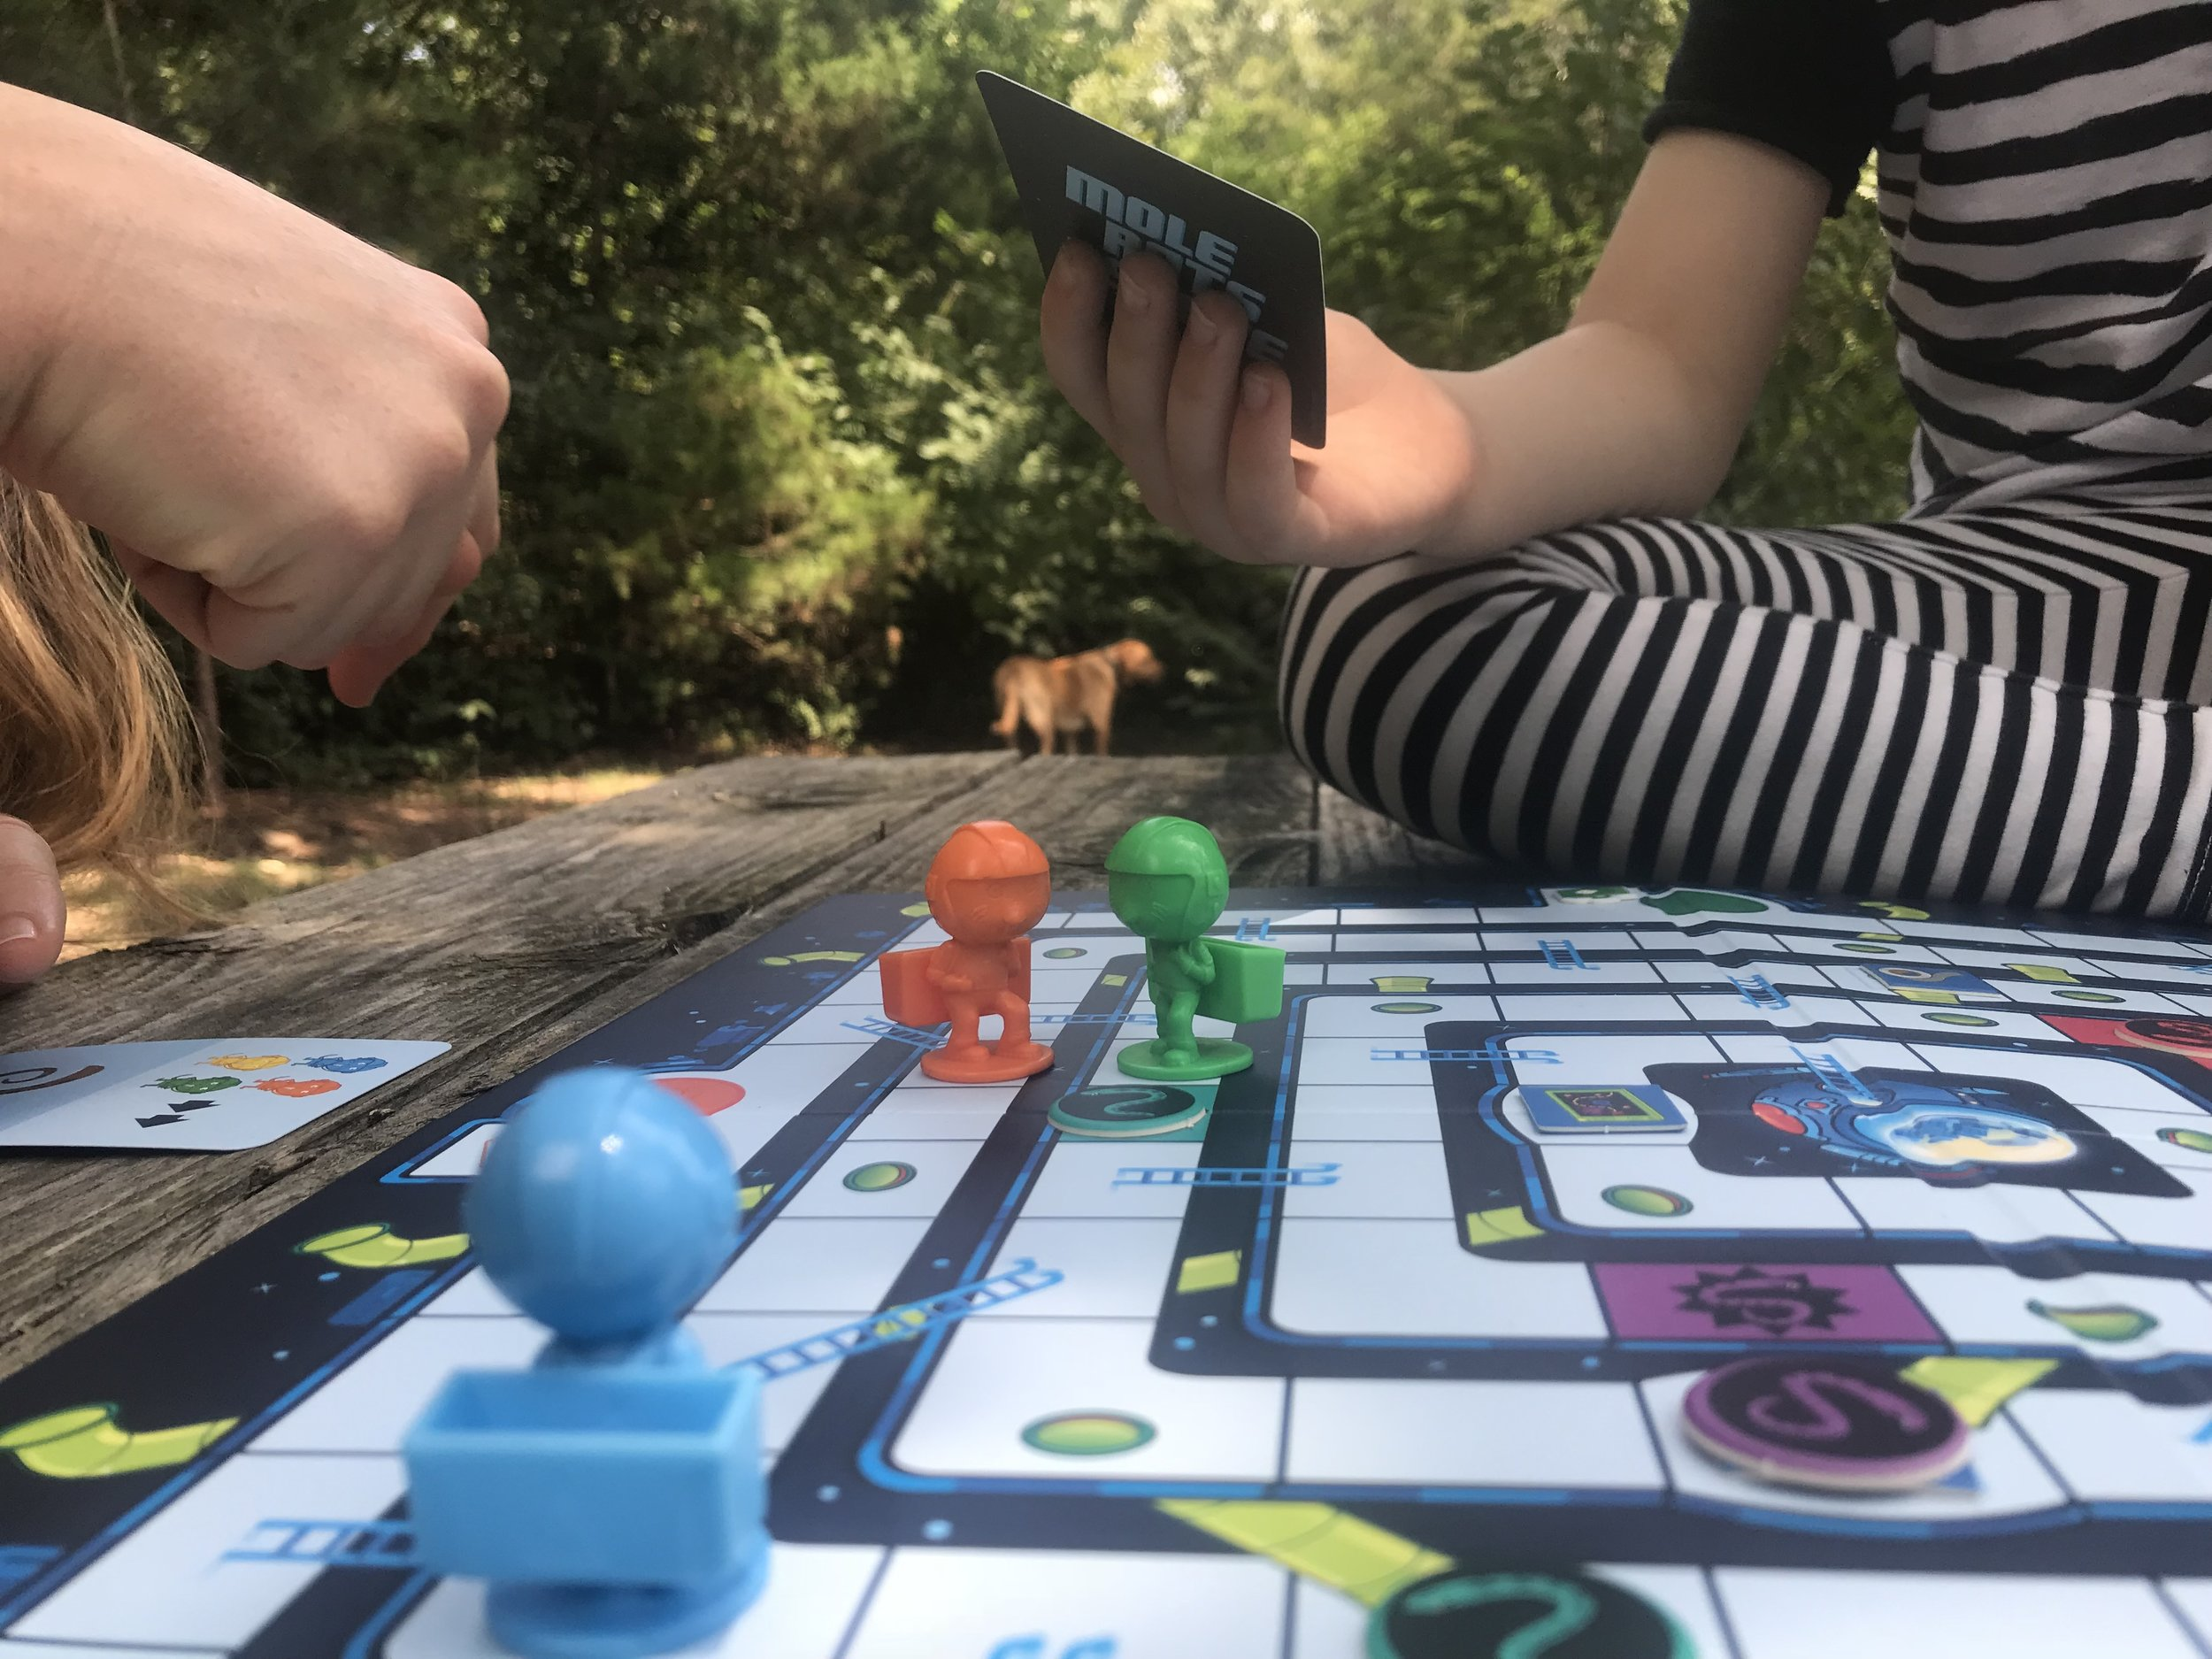 mole rats in space peaceable kingdom cooperative board game.jpeg